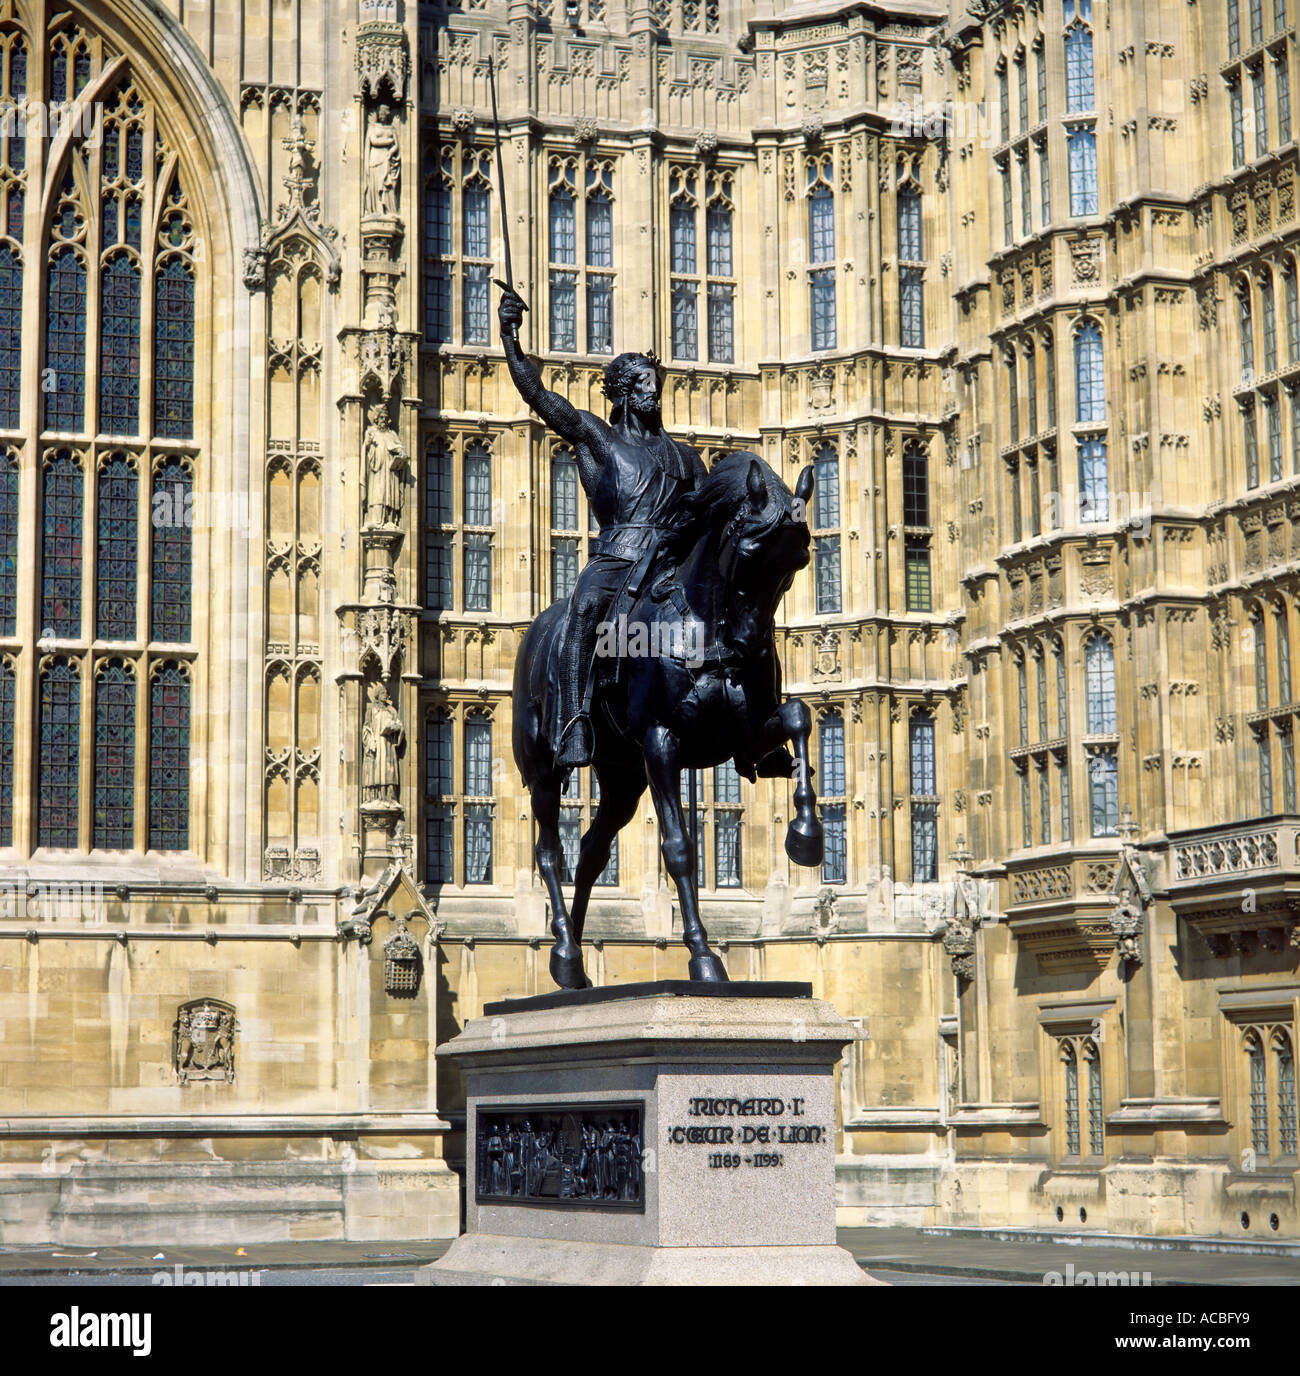 king richard the lionheart richard the 1st outside westminster houses of parliament london england great britain editorial use o - Stock Image